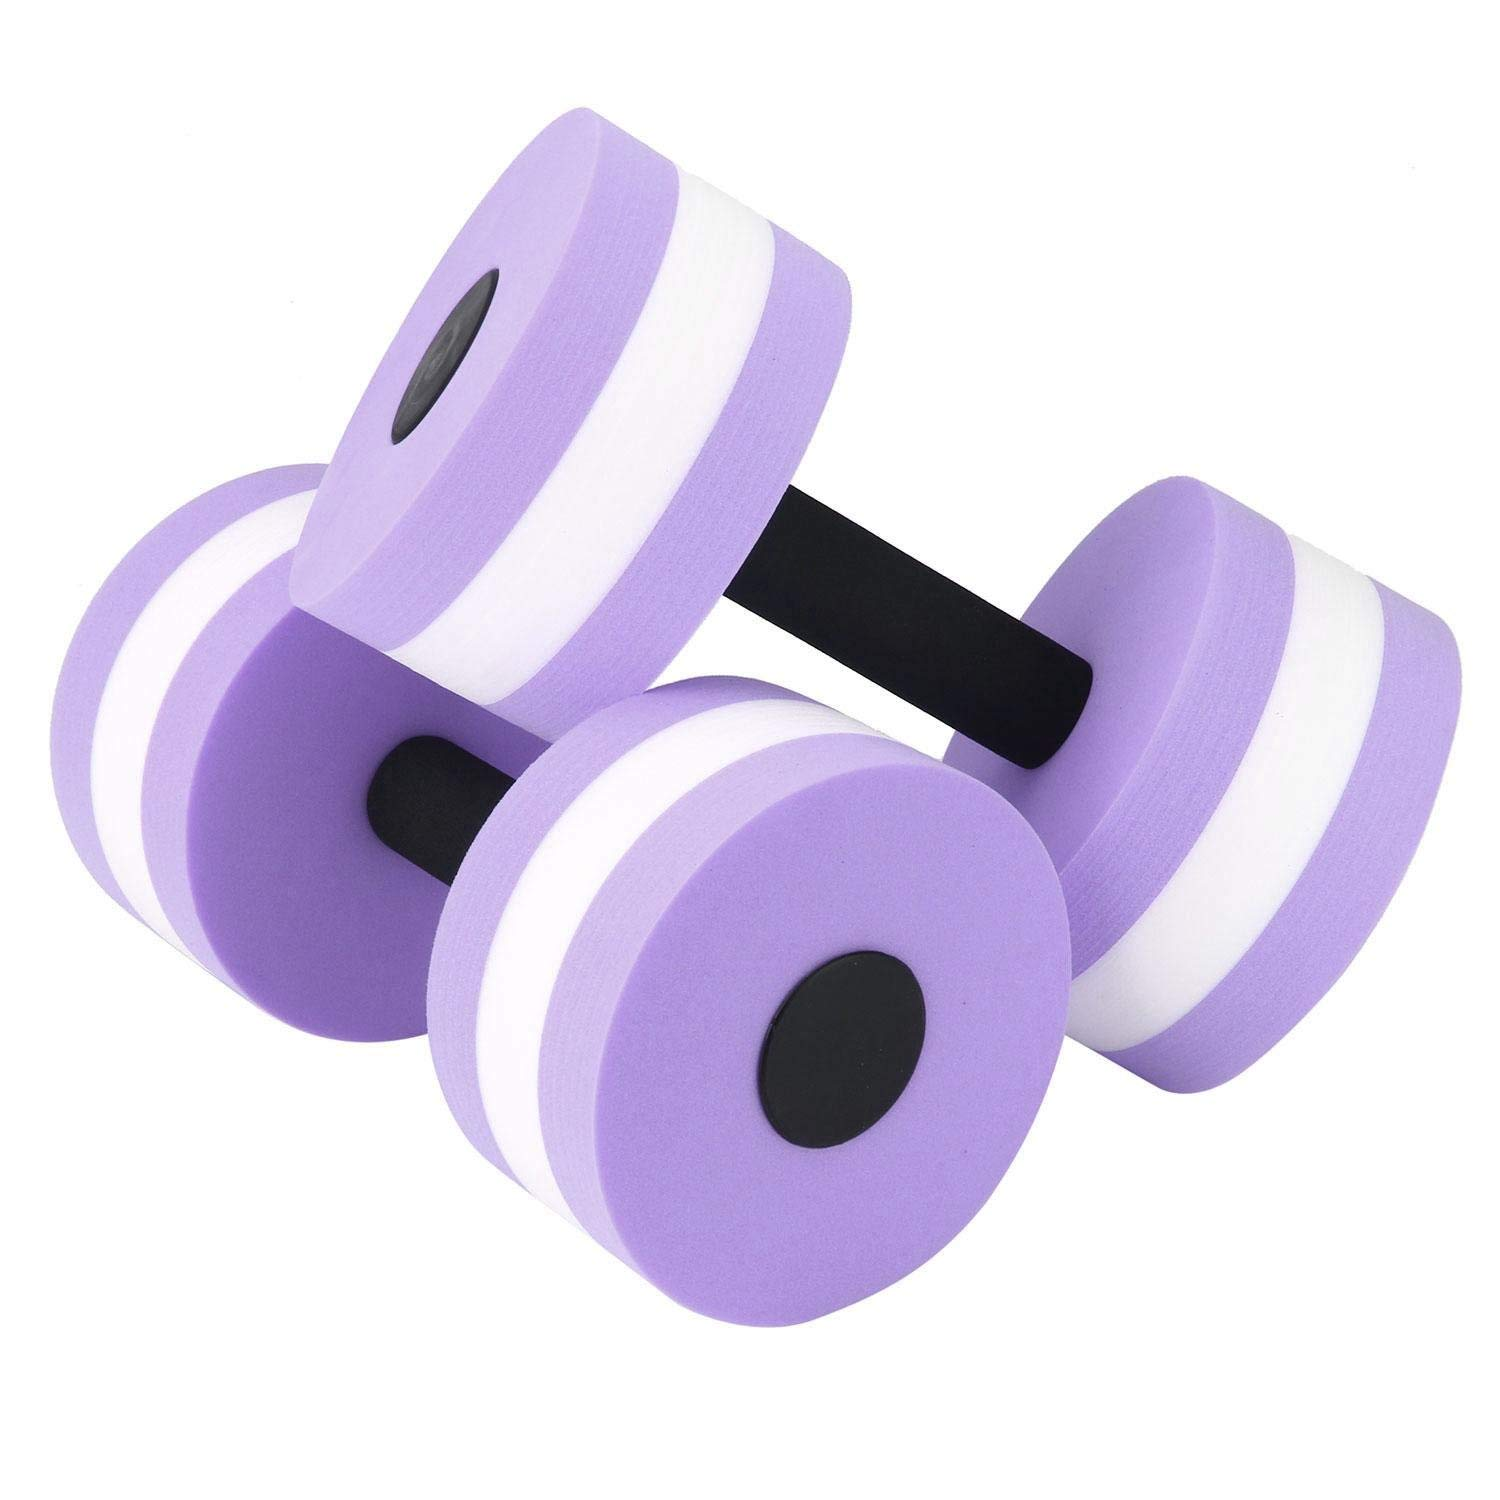 7be61c95d09 Get Quotations · Leegoal Aquatic Dumbbells, Exercise Foam Dumbbells with  Hand Bars, Pool Resistance for Water Aerobics